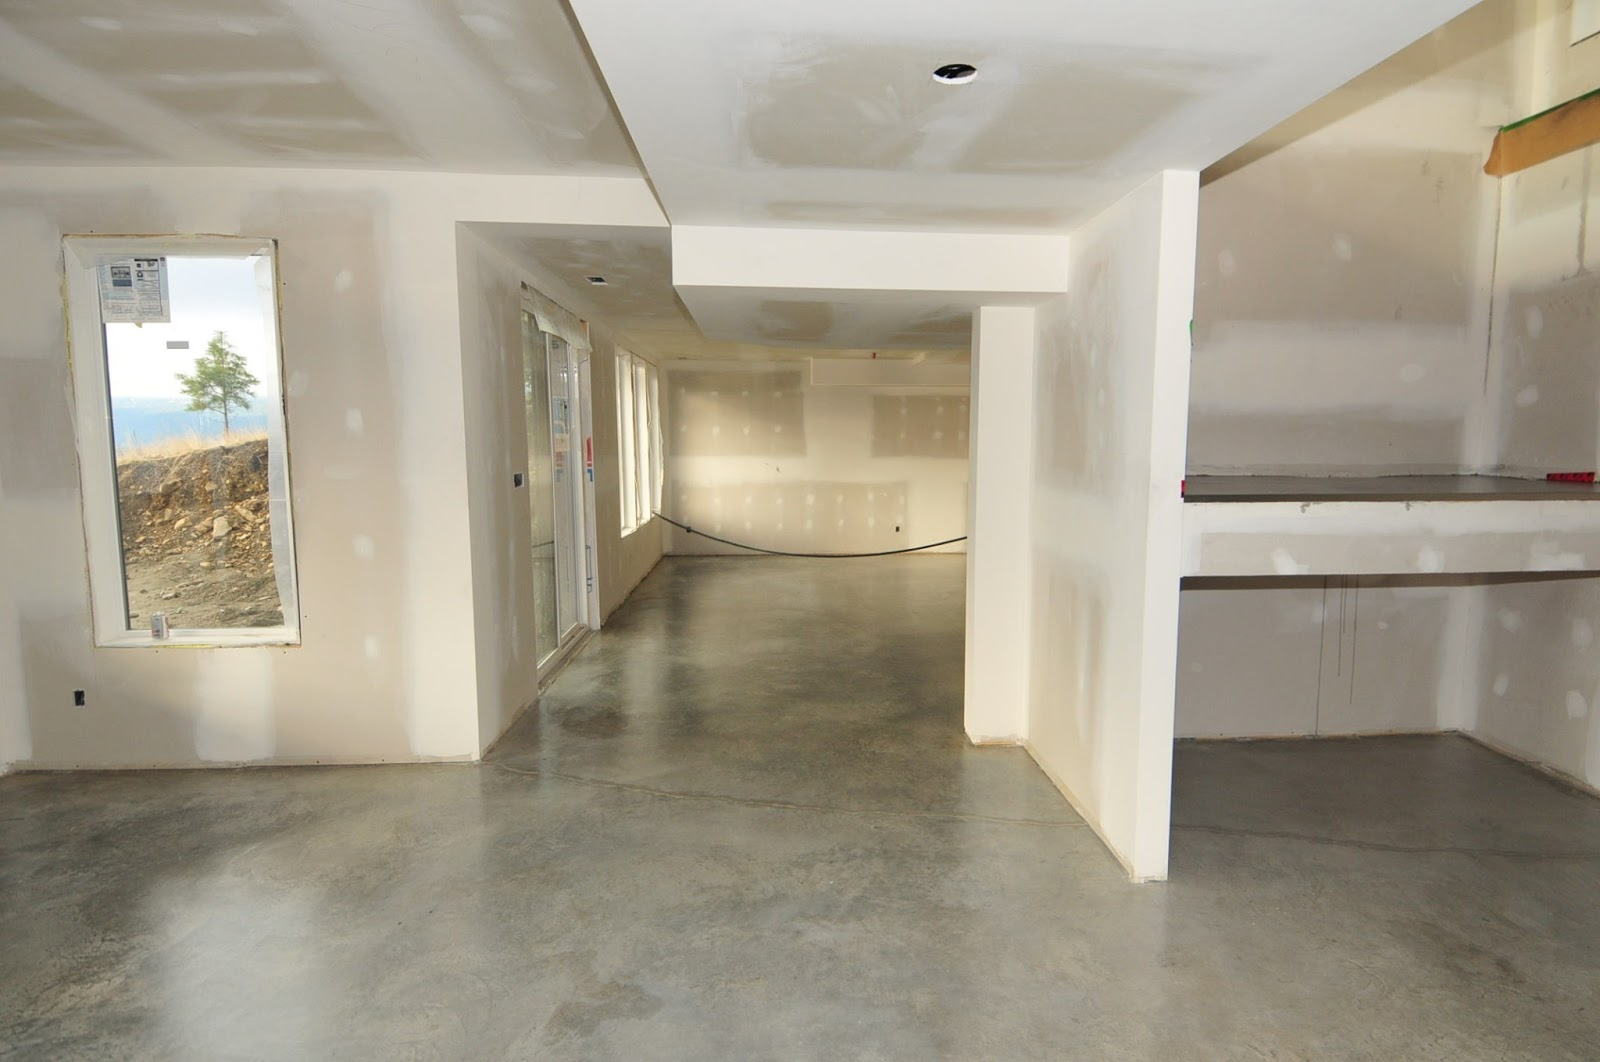 MODE CONCRETE Basement Concrete Floors Naturally Look Modern and